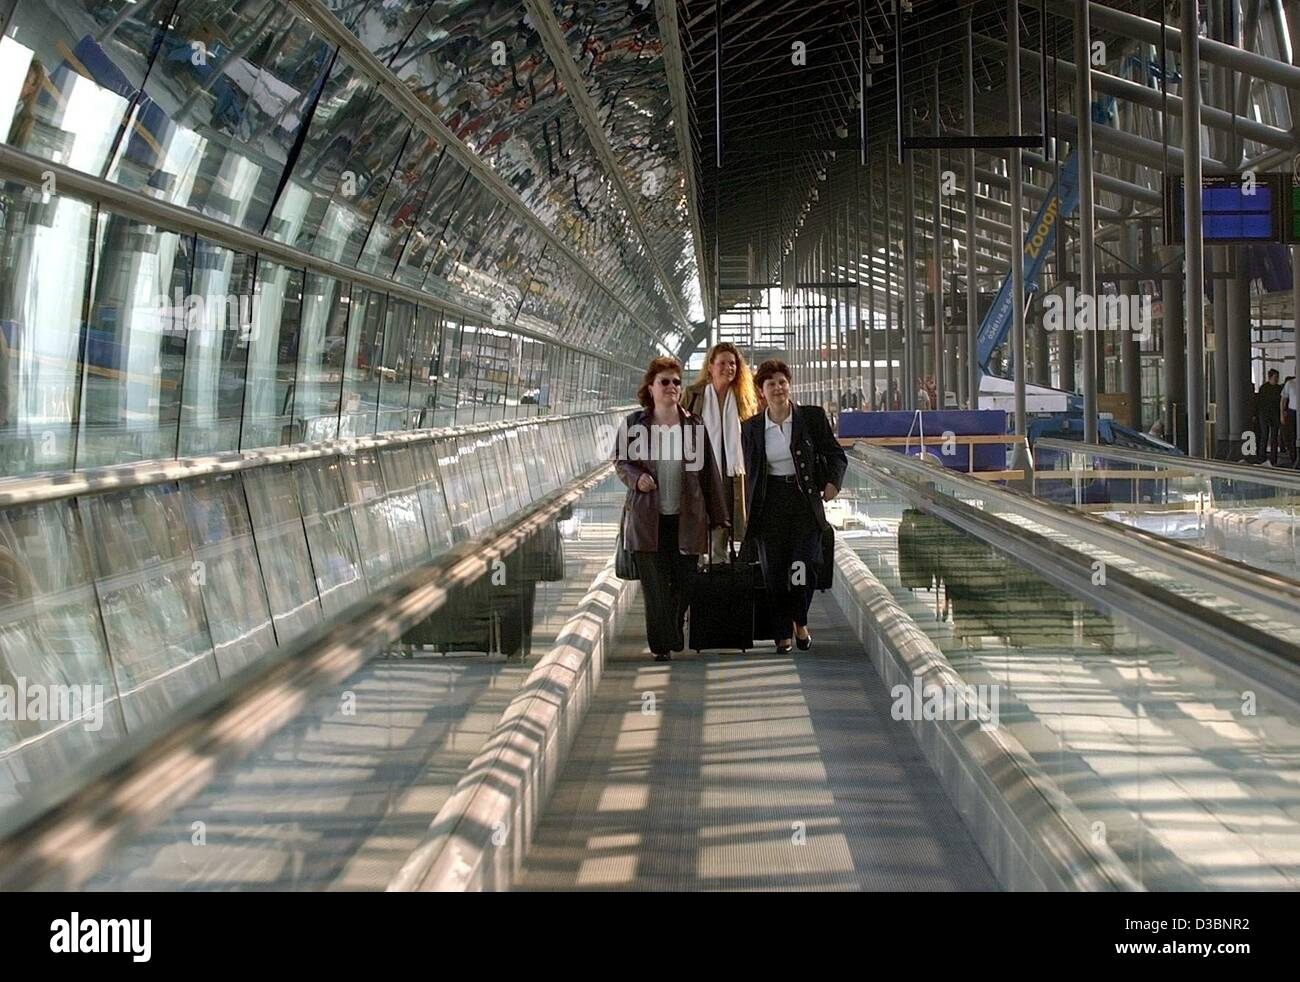 (dpa) - A group of passangers walk on their way to the check-in area of the new central terminal at the Leipzig Stock Photo